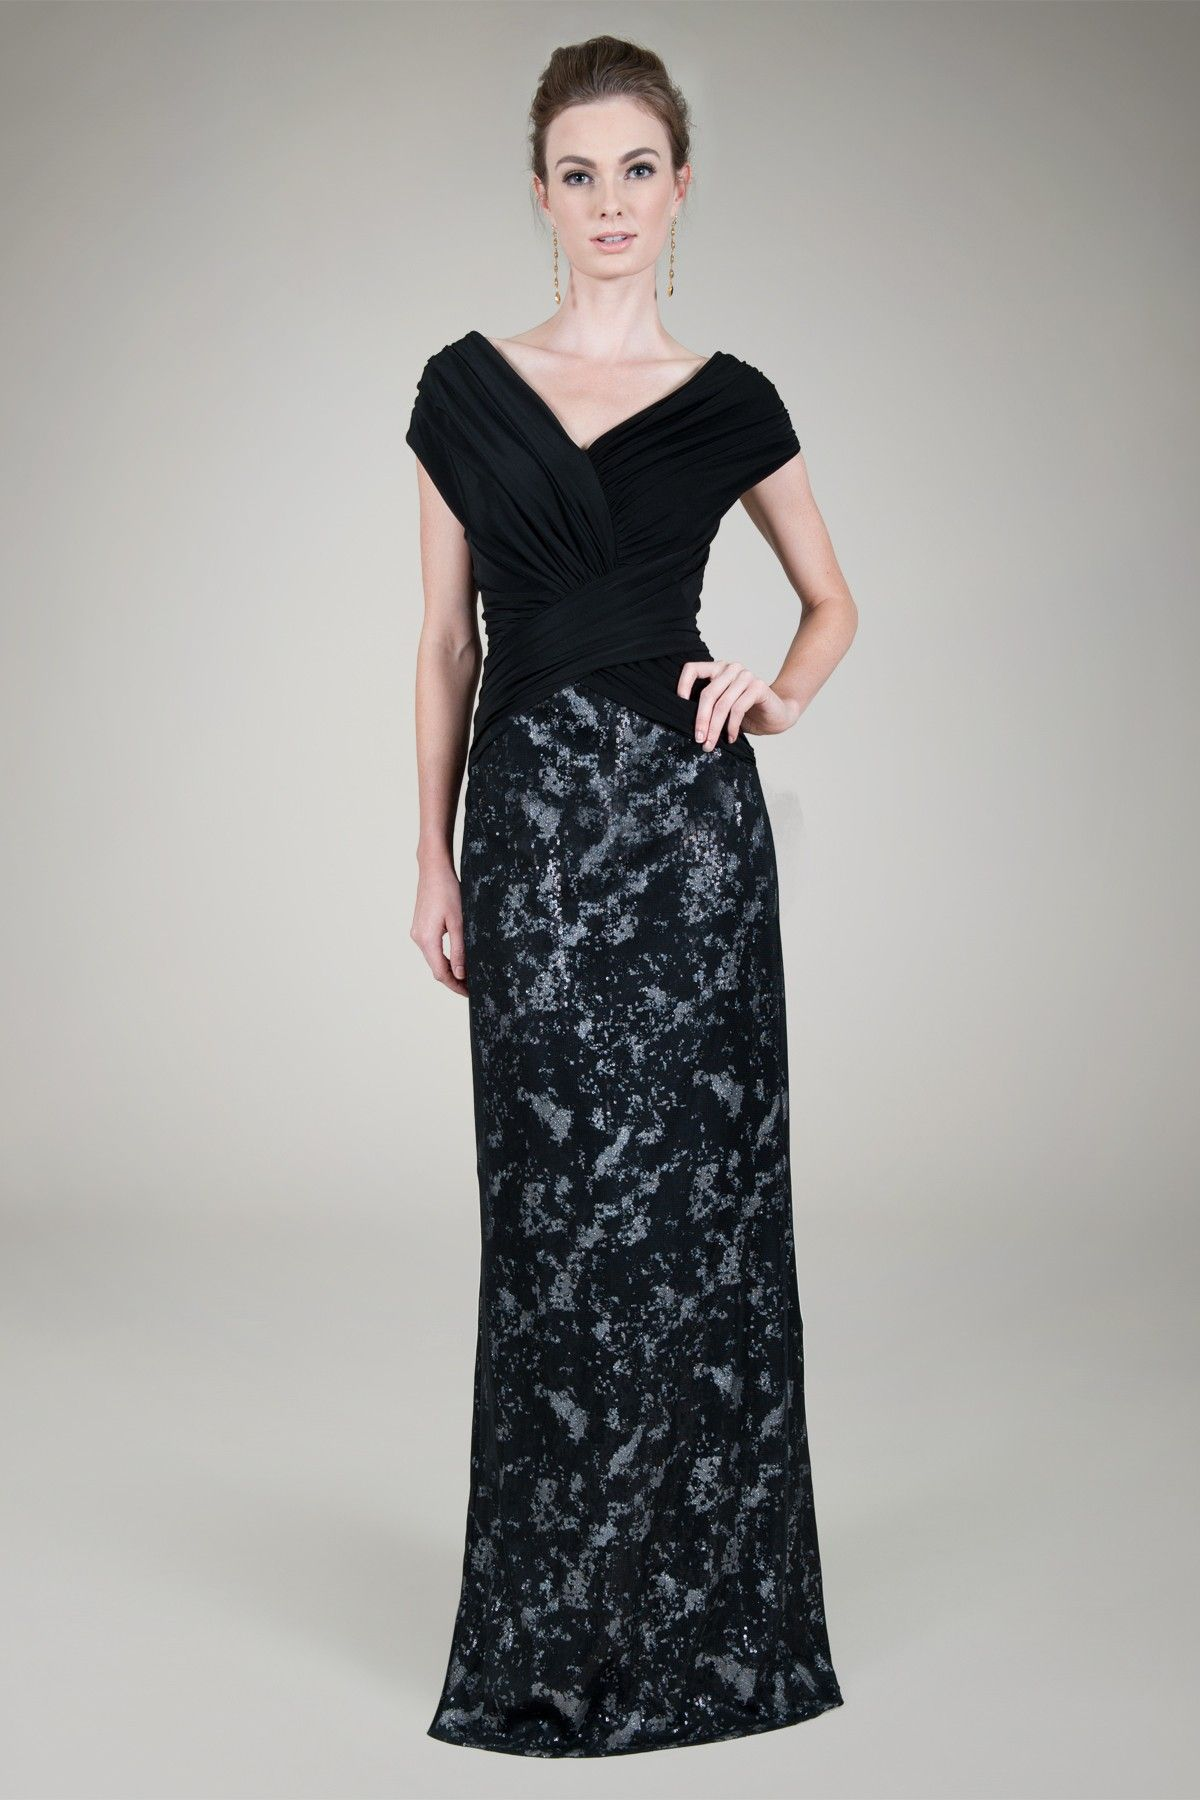 Mini Paillette Gown in Black / Silver - Evening Gowns - Evening ...